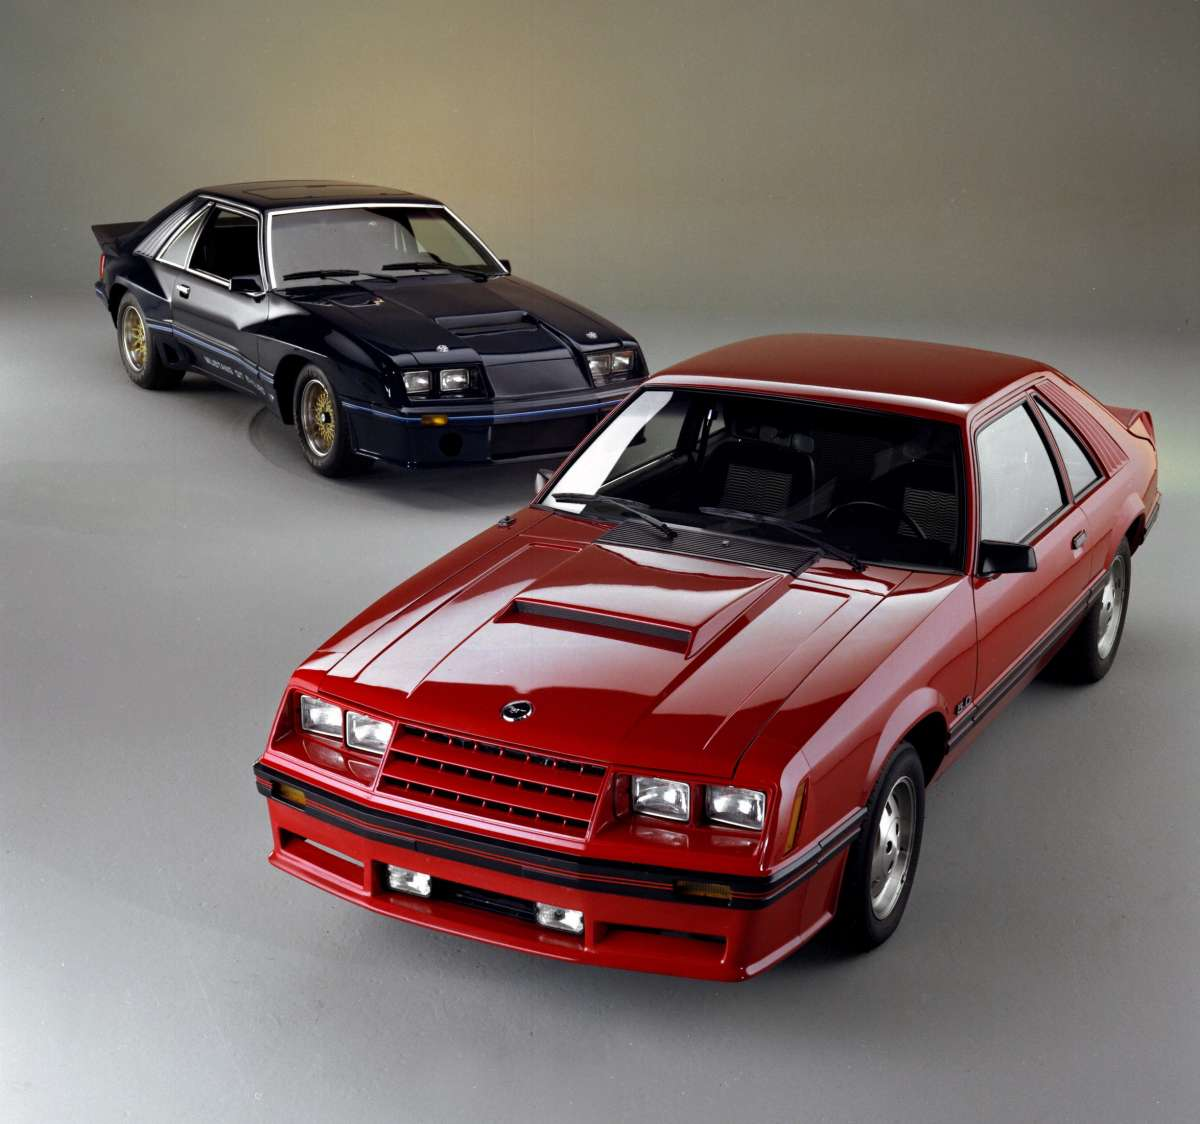 1982 Mustang Gt >> Car Show Classic: 1982 Ford Mustang GT – Welcome Back